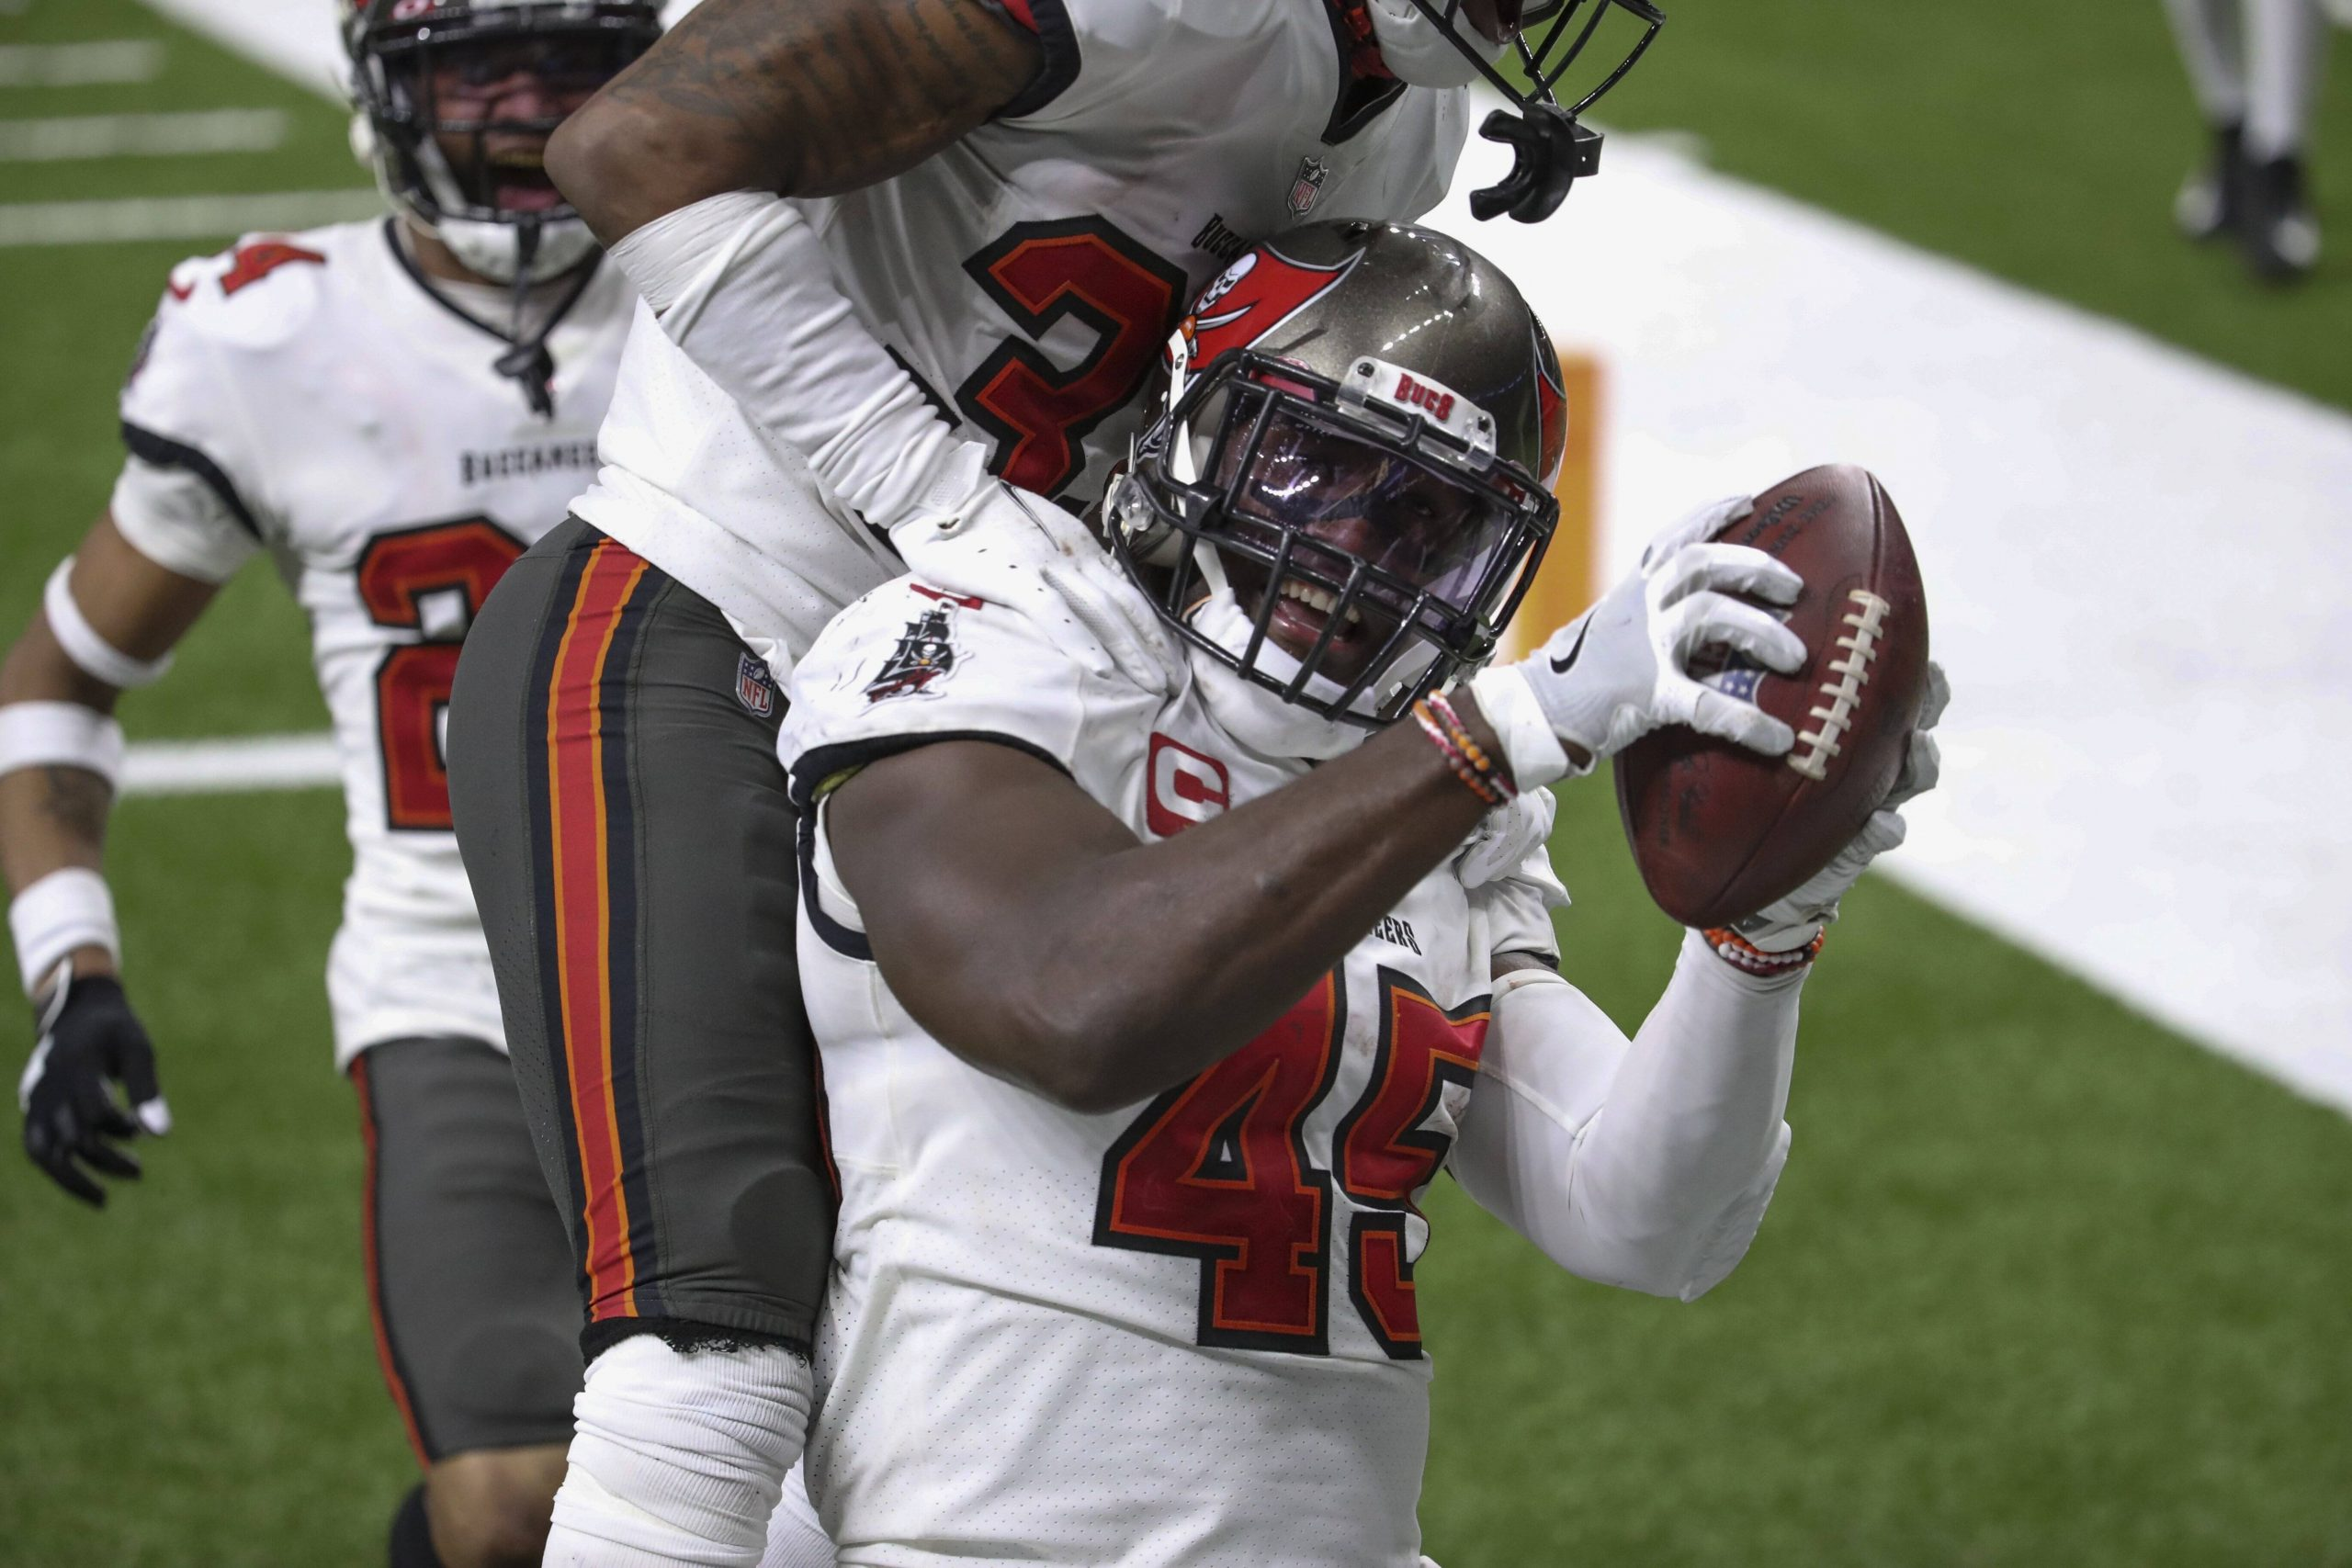 January 17, 2021, Landover, Florida, USA: Tampa Bay Buccaneers inside linebacker Devin White (45) fumble recovery durin